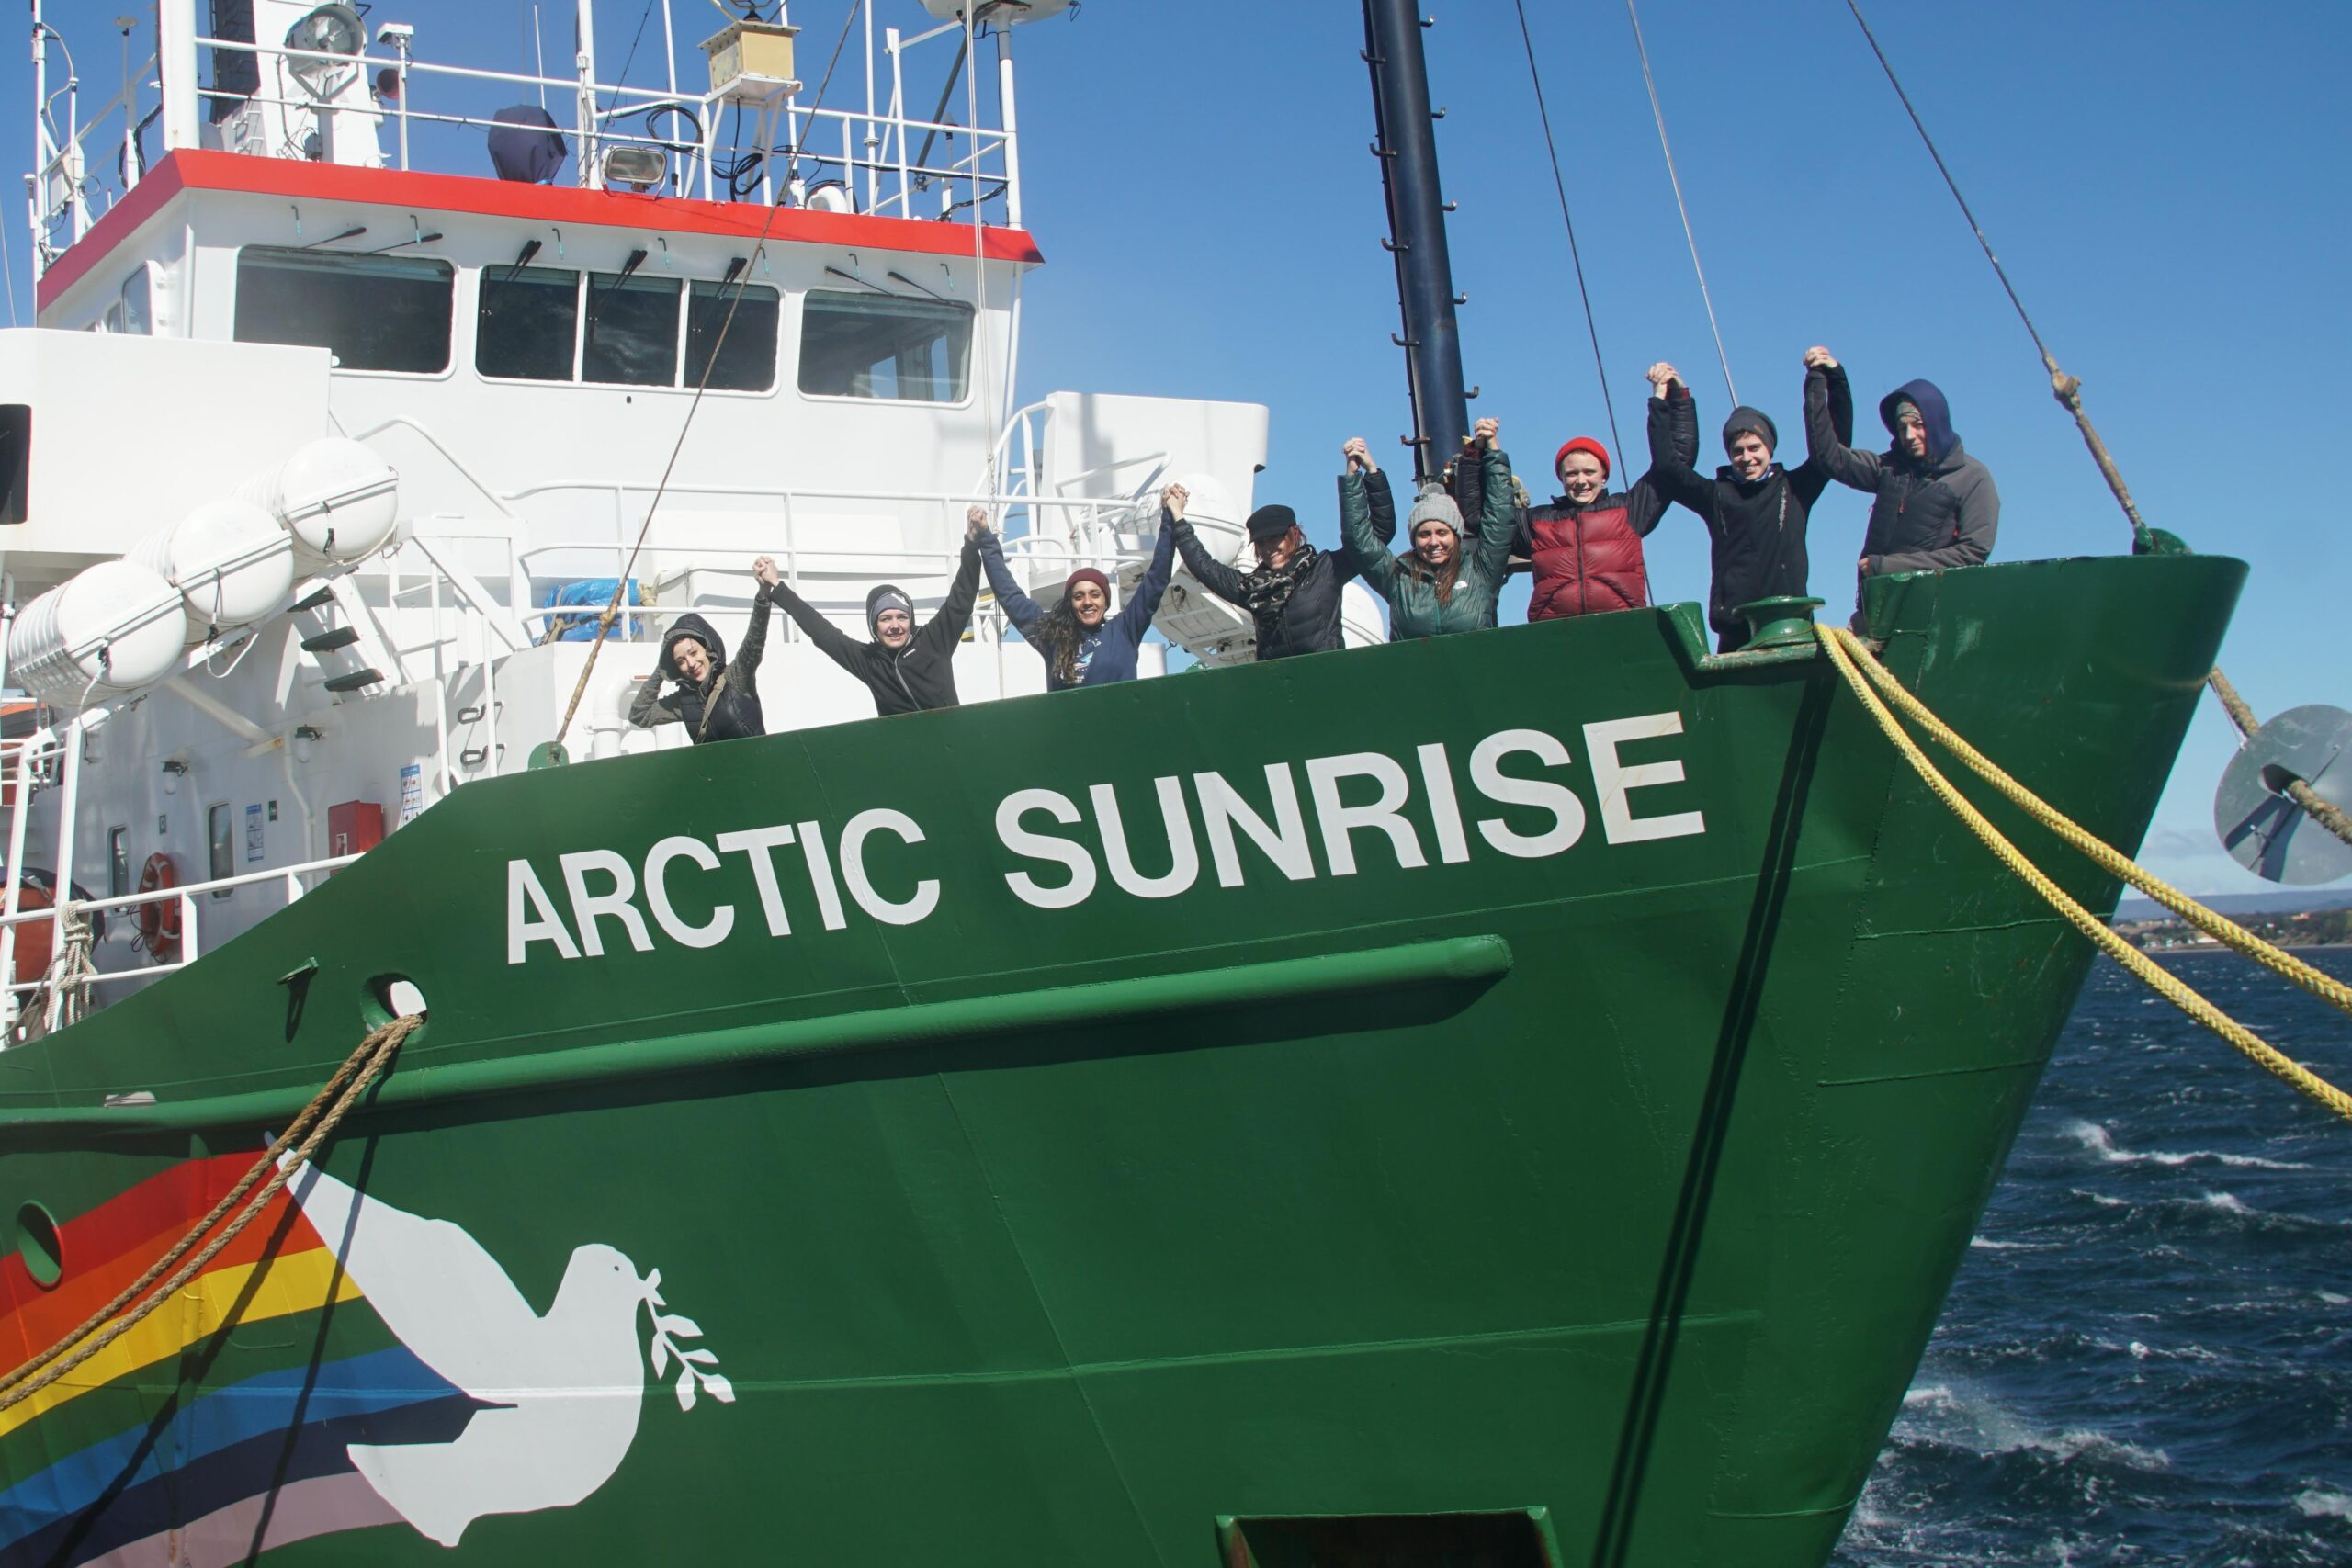 Meena with seven women standing on the front deck of the Actic Sunrise, a Greenpeace ship which is mostly green, with a dove and rainbow motif painted on it. Meena is the only person of colour.